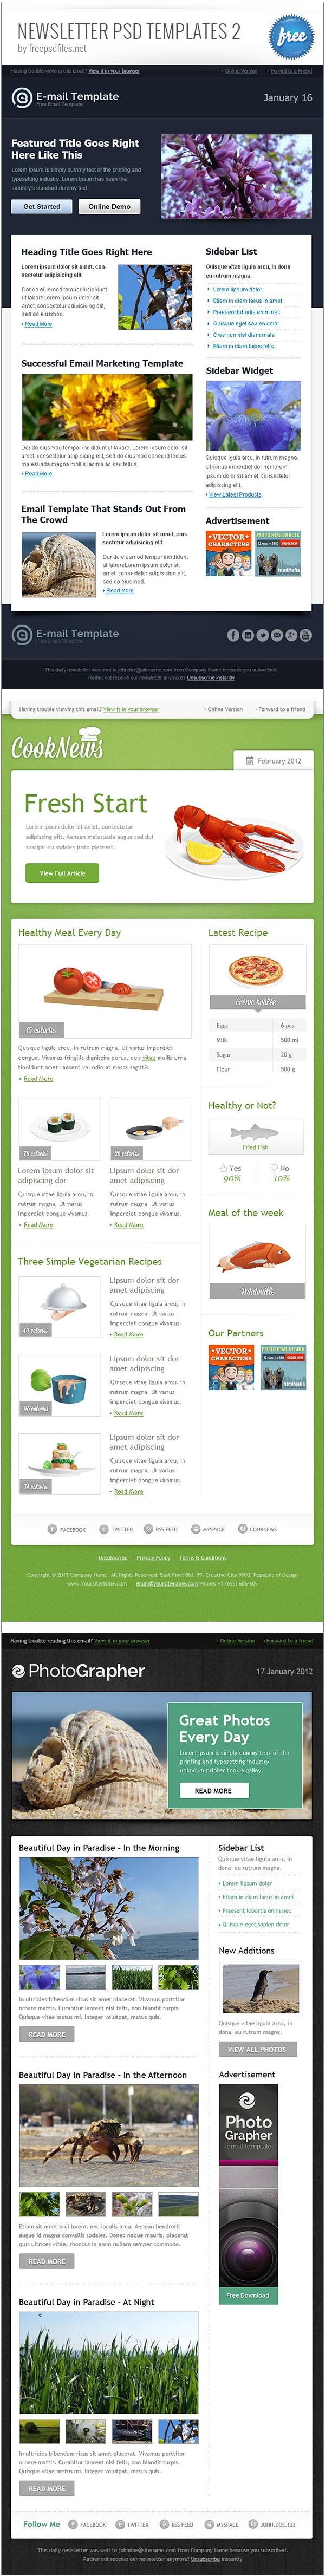 Newsletter PSD Template